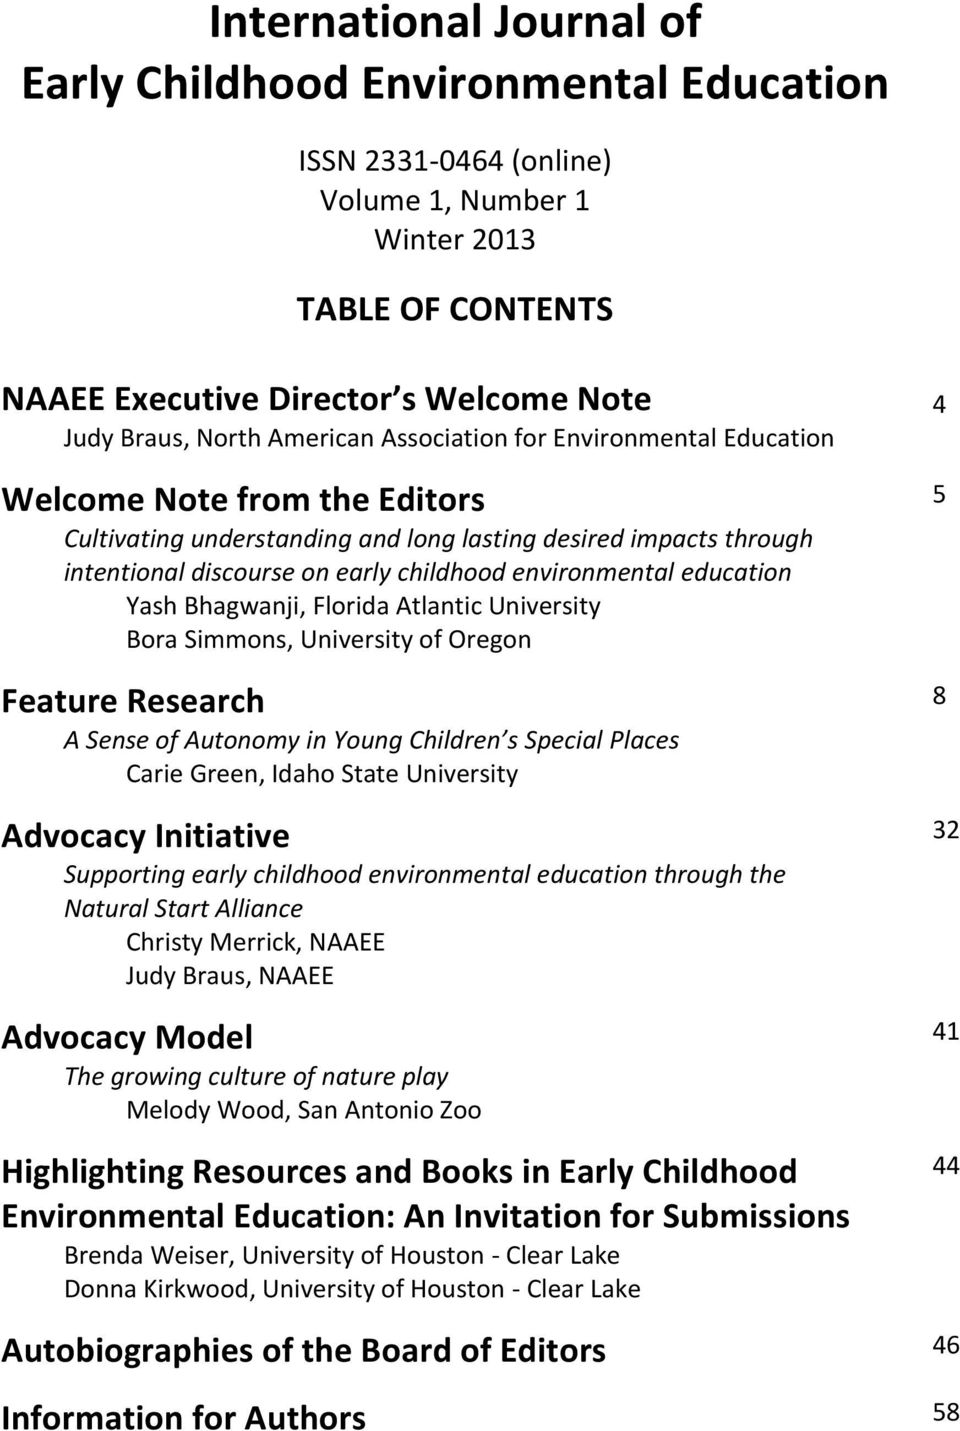 environmental education Yash Bhagwanji, Florida Atlantic University Bora Simmons, University of Oregon Feature Research A Sense of Autonomy in Young Children s Special Places Carie Green, Idaho State